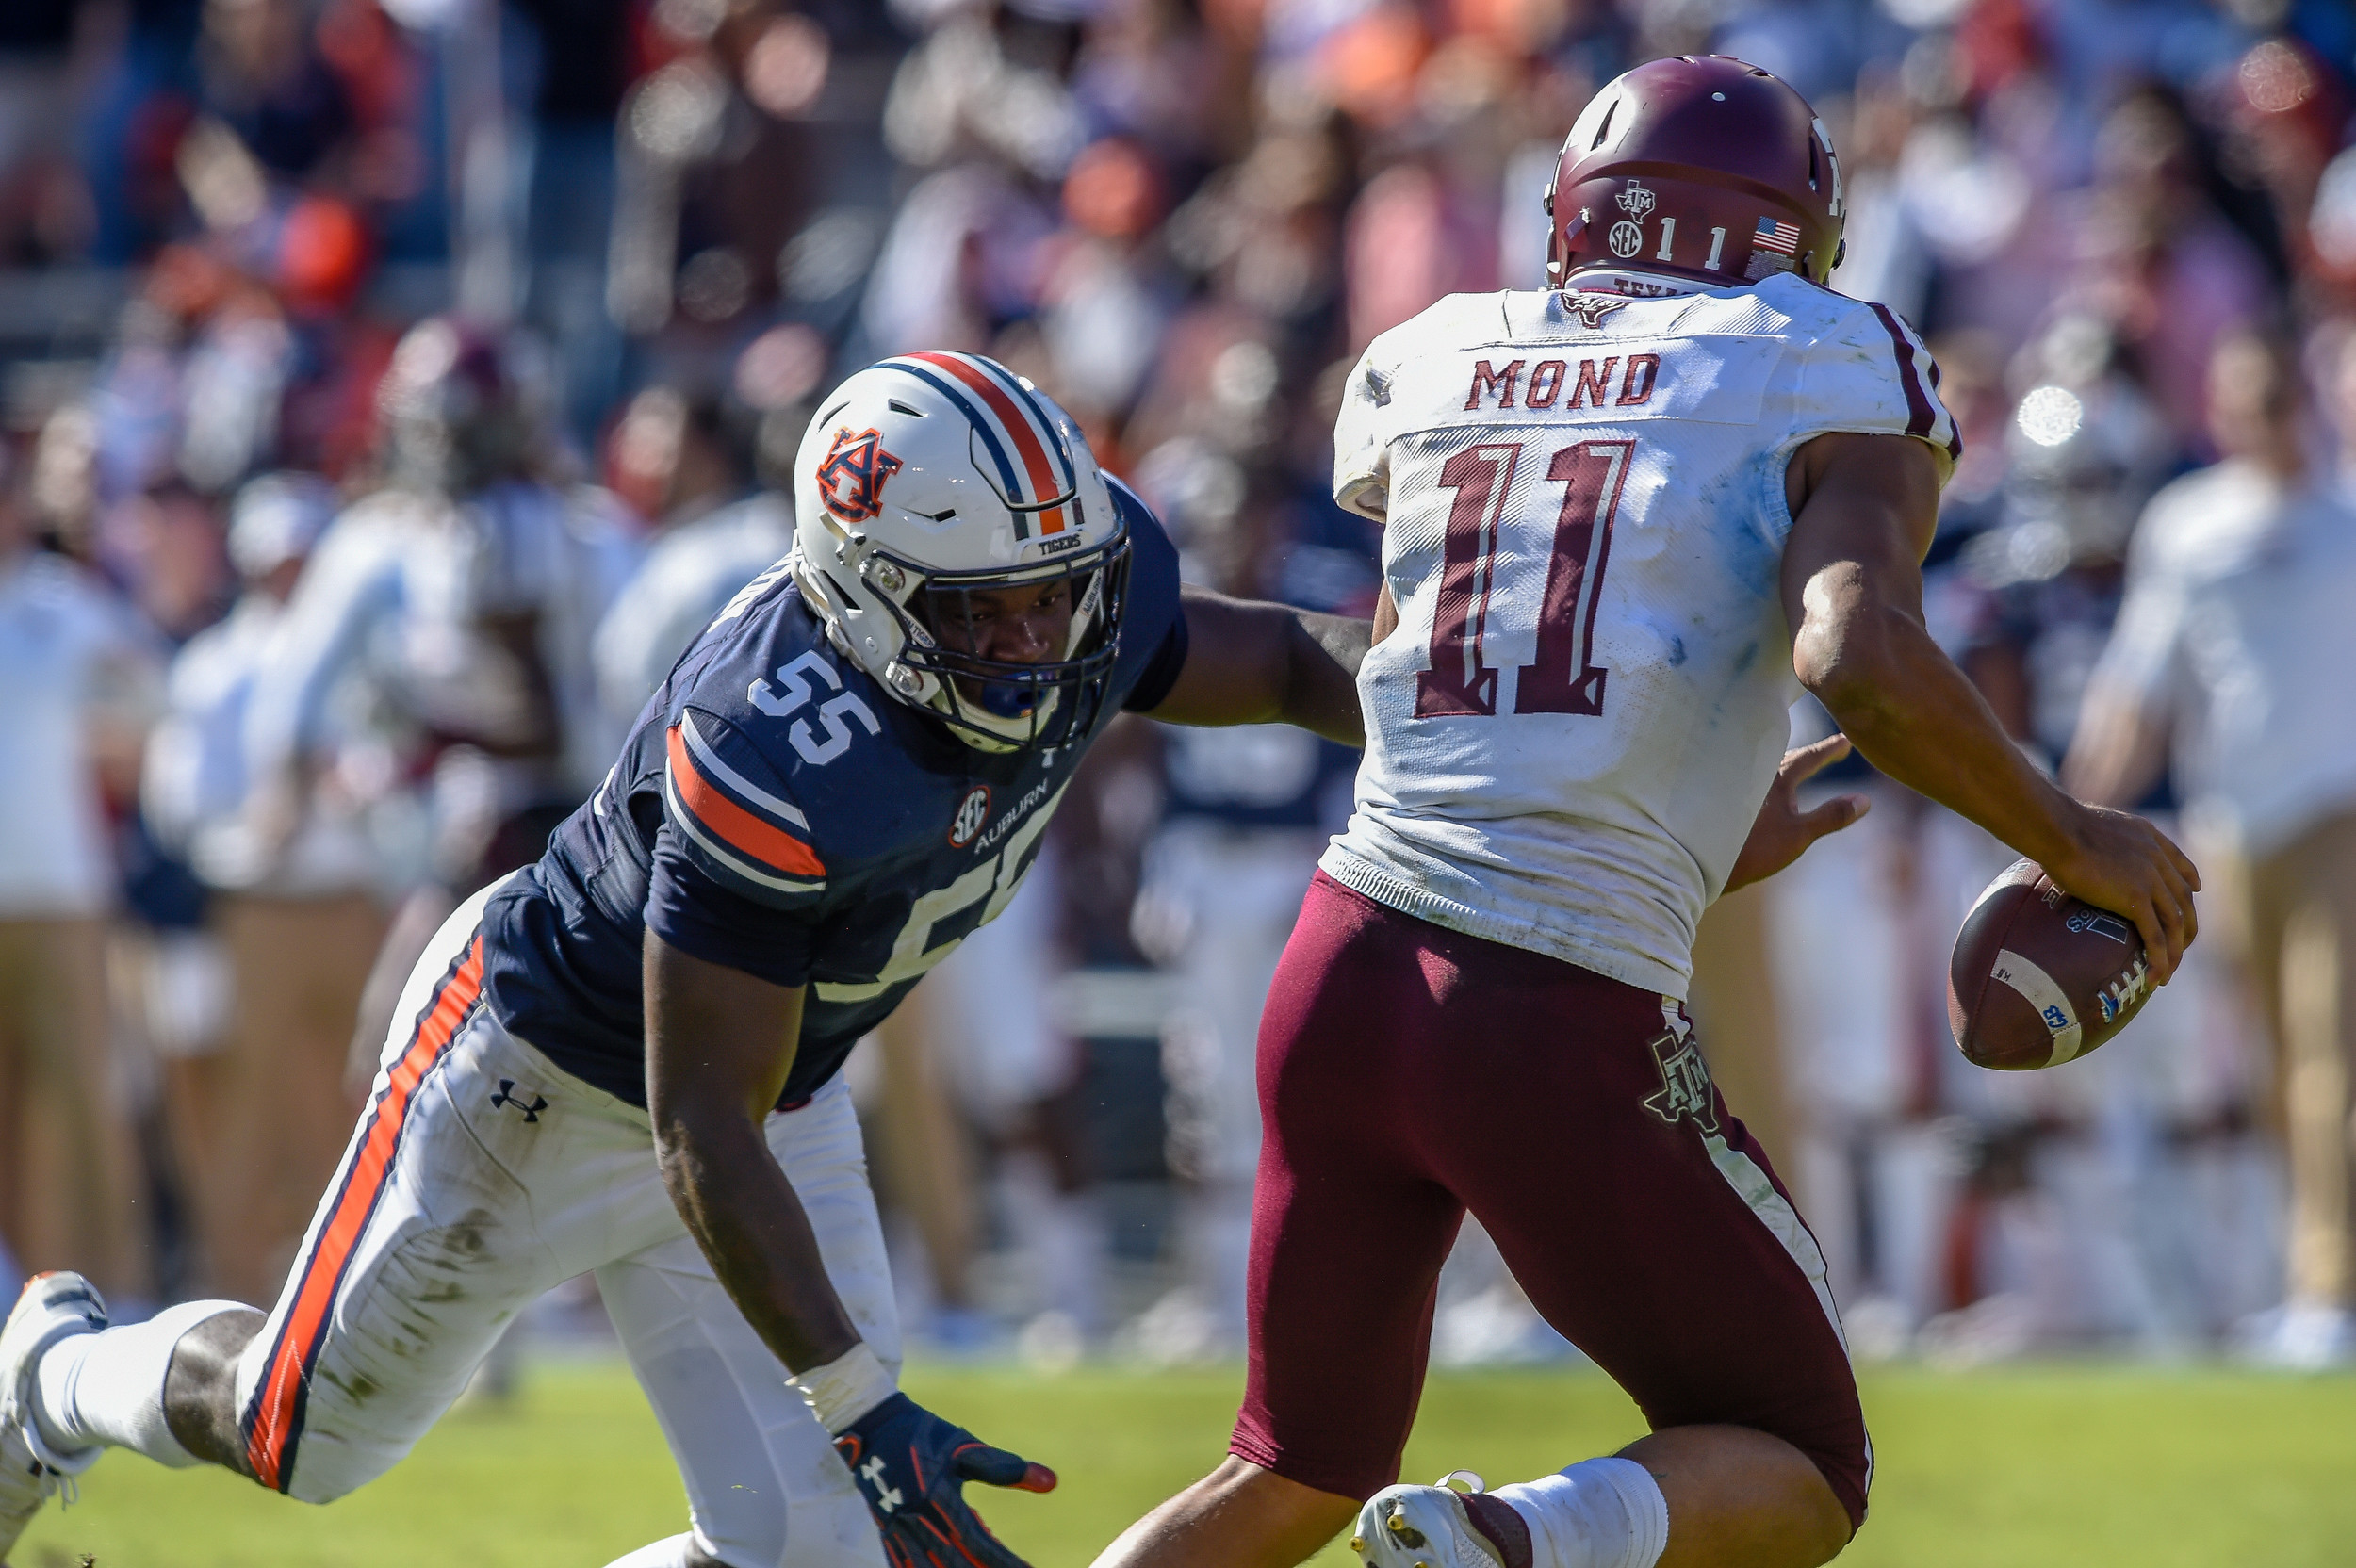 Auburn Tigers linebacker T.D. Moultry (55) pressures Texas A&M Aggies quarterback Kellen Mond (11) during the second half of an NCAA football game Saturday, November 3, 2018, at Jordan-Hare Stadium in Auburn, Ala. (Photo by Jeff Johnsey)